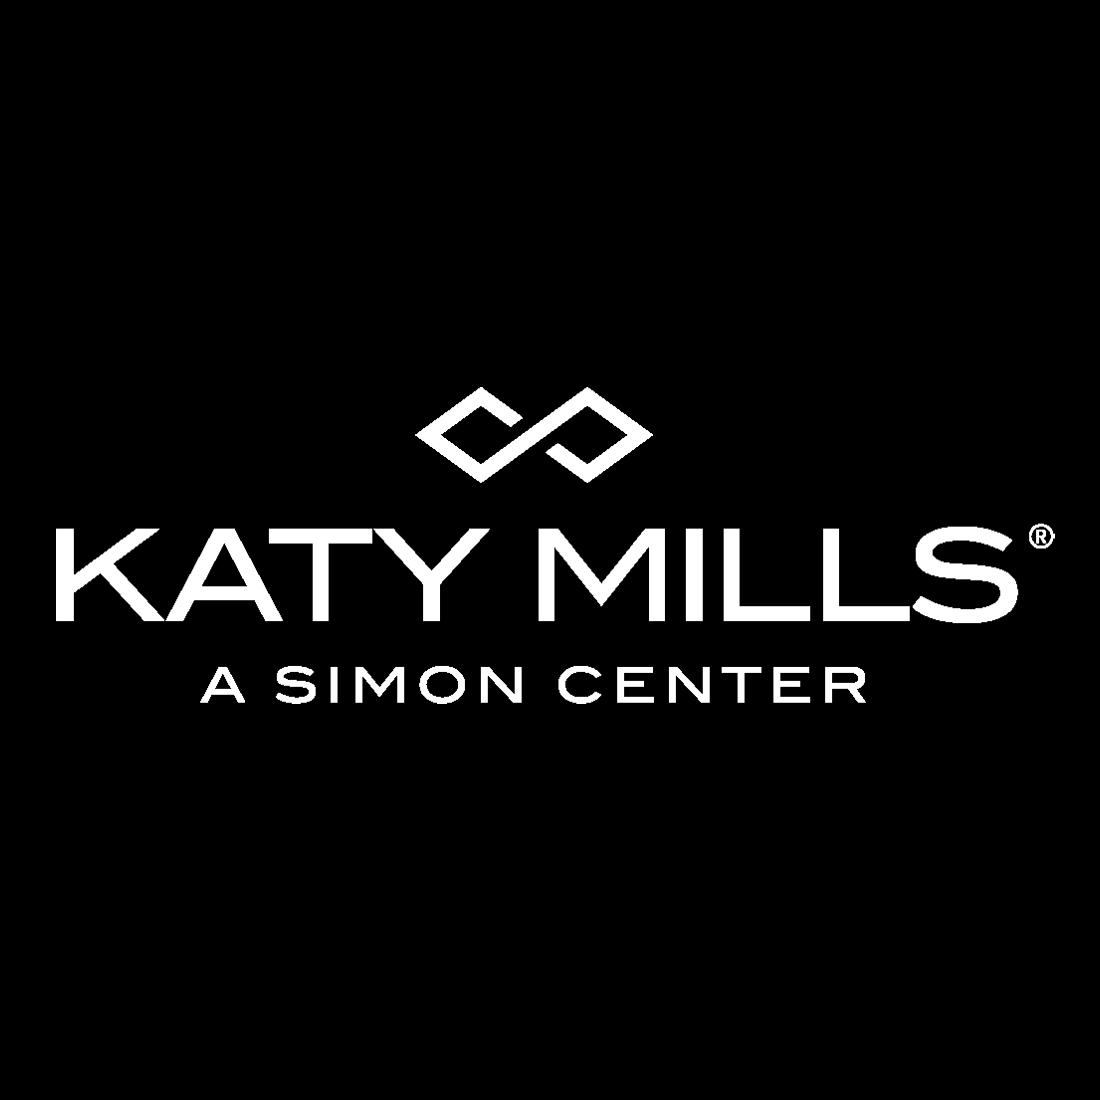 Katy Mills - Katy, TX - Factory Outlet Stores